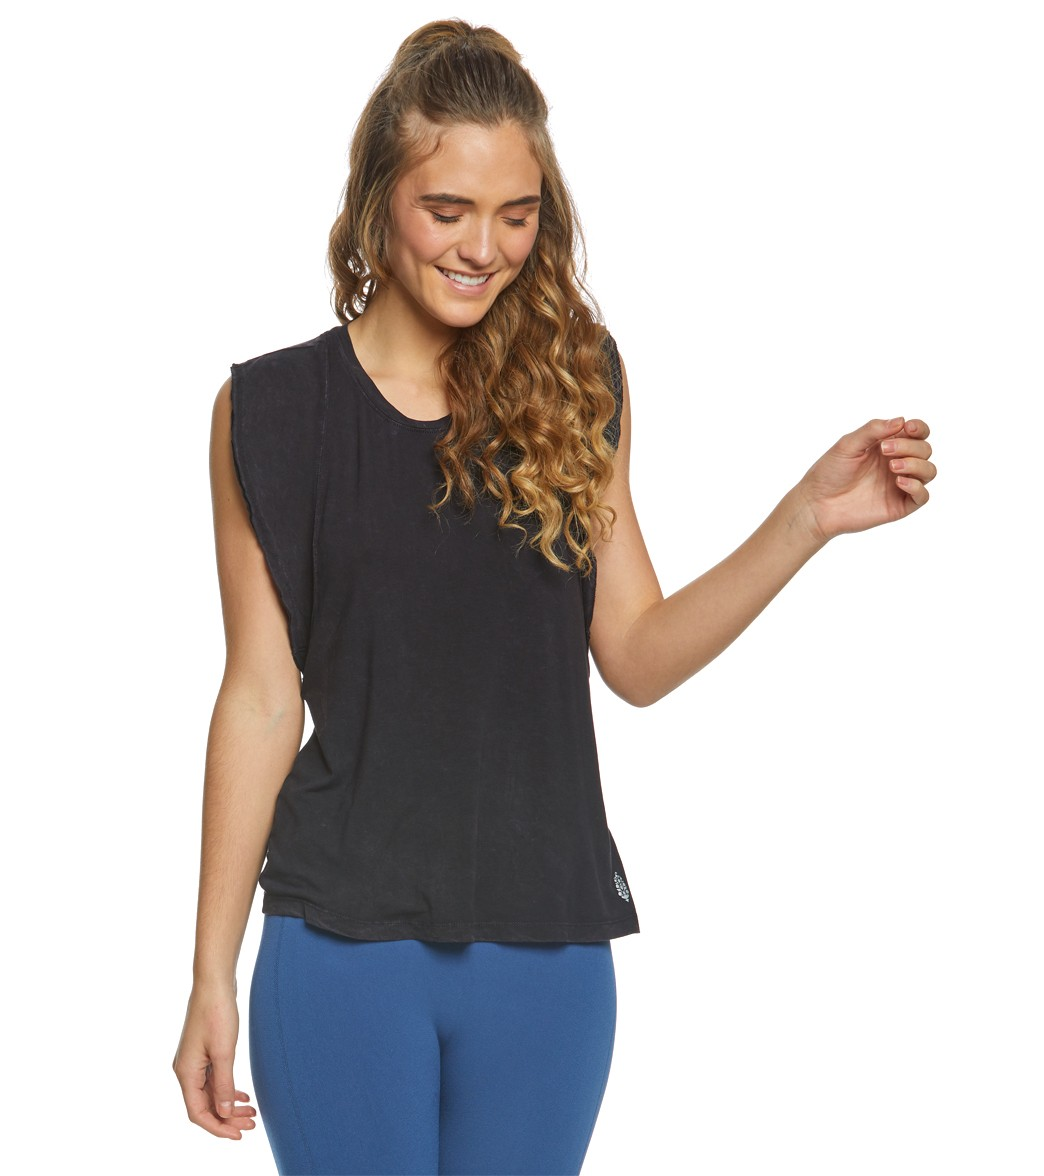 098567b8cf Free People Movement Ryder Yoga Tank Top at YogaOutlet.com